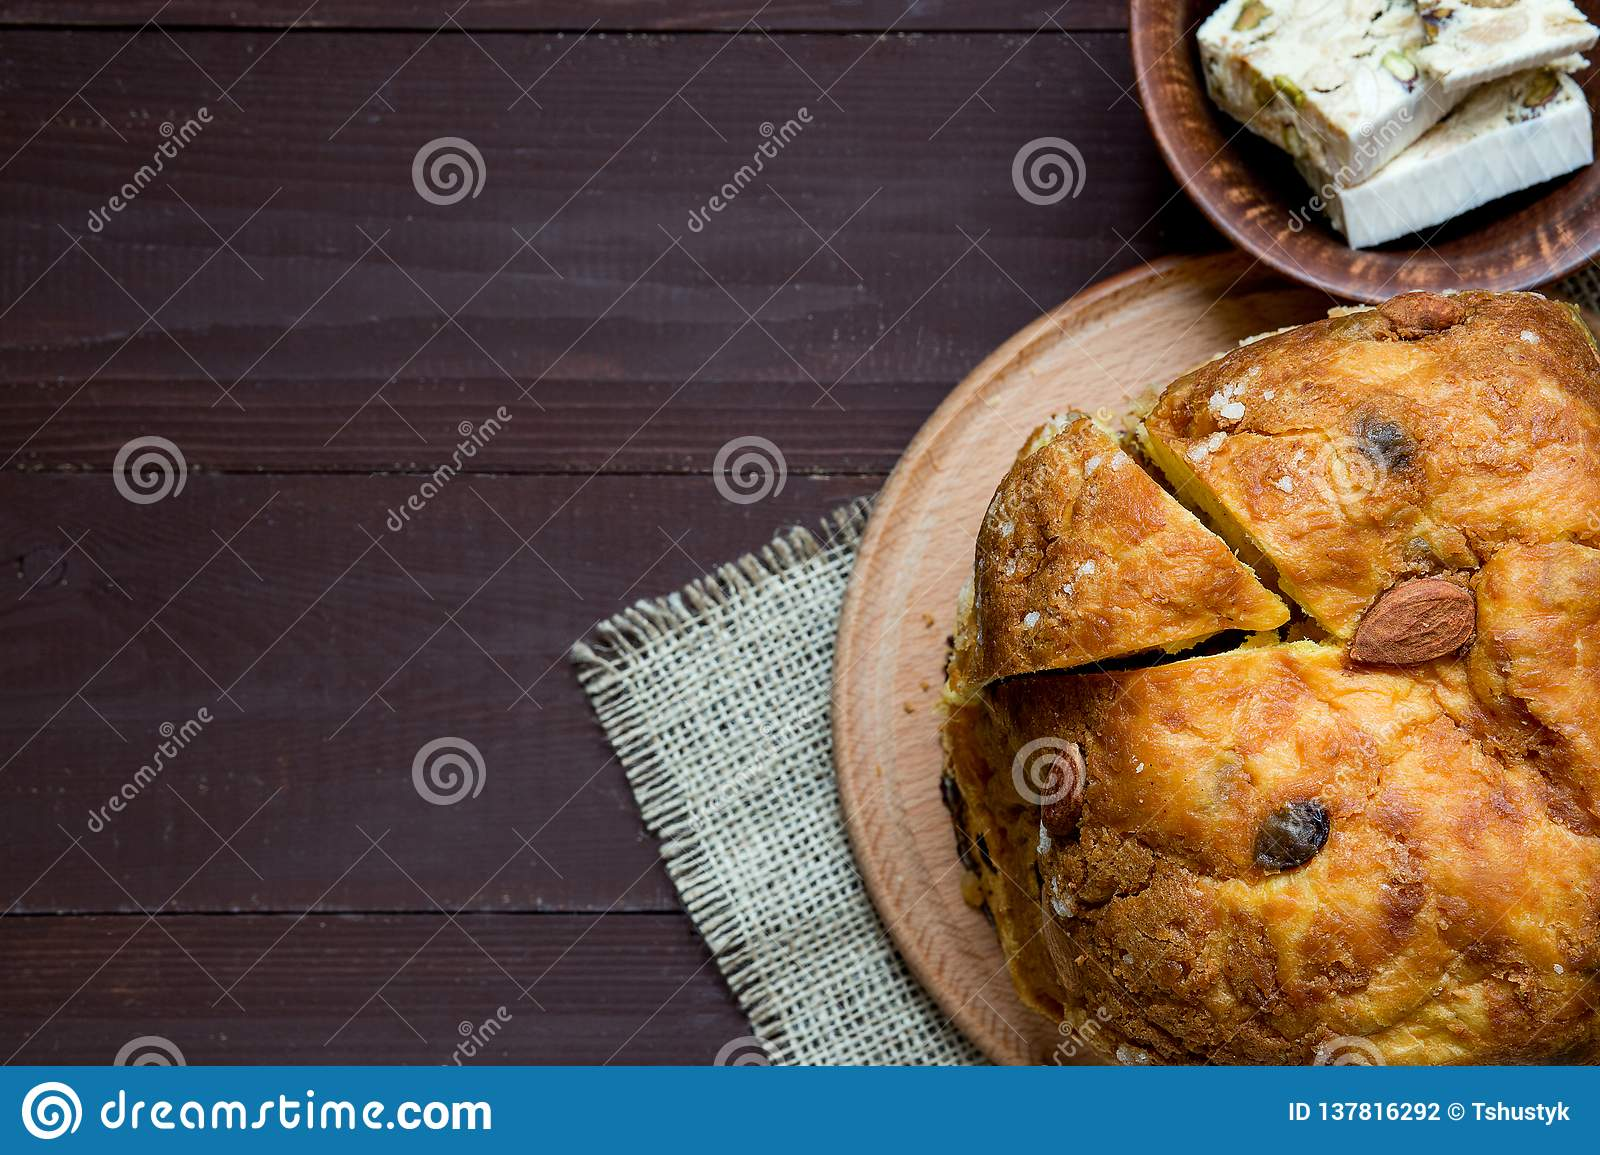 Homemade panettone, italian traditional Christmas cake on brown background, close up, top view, copy space